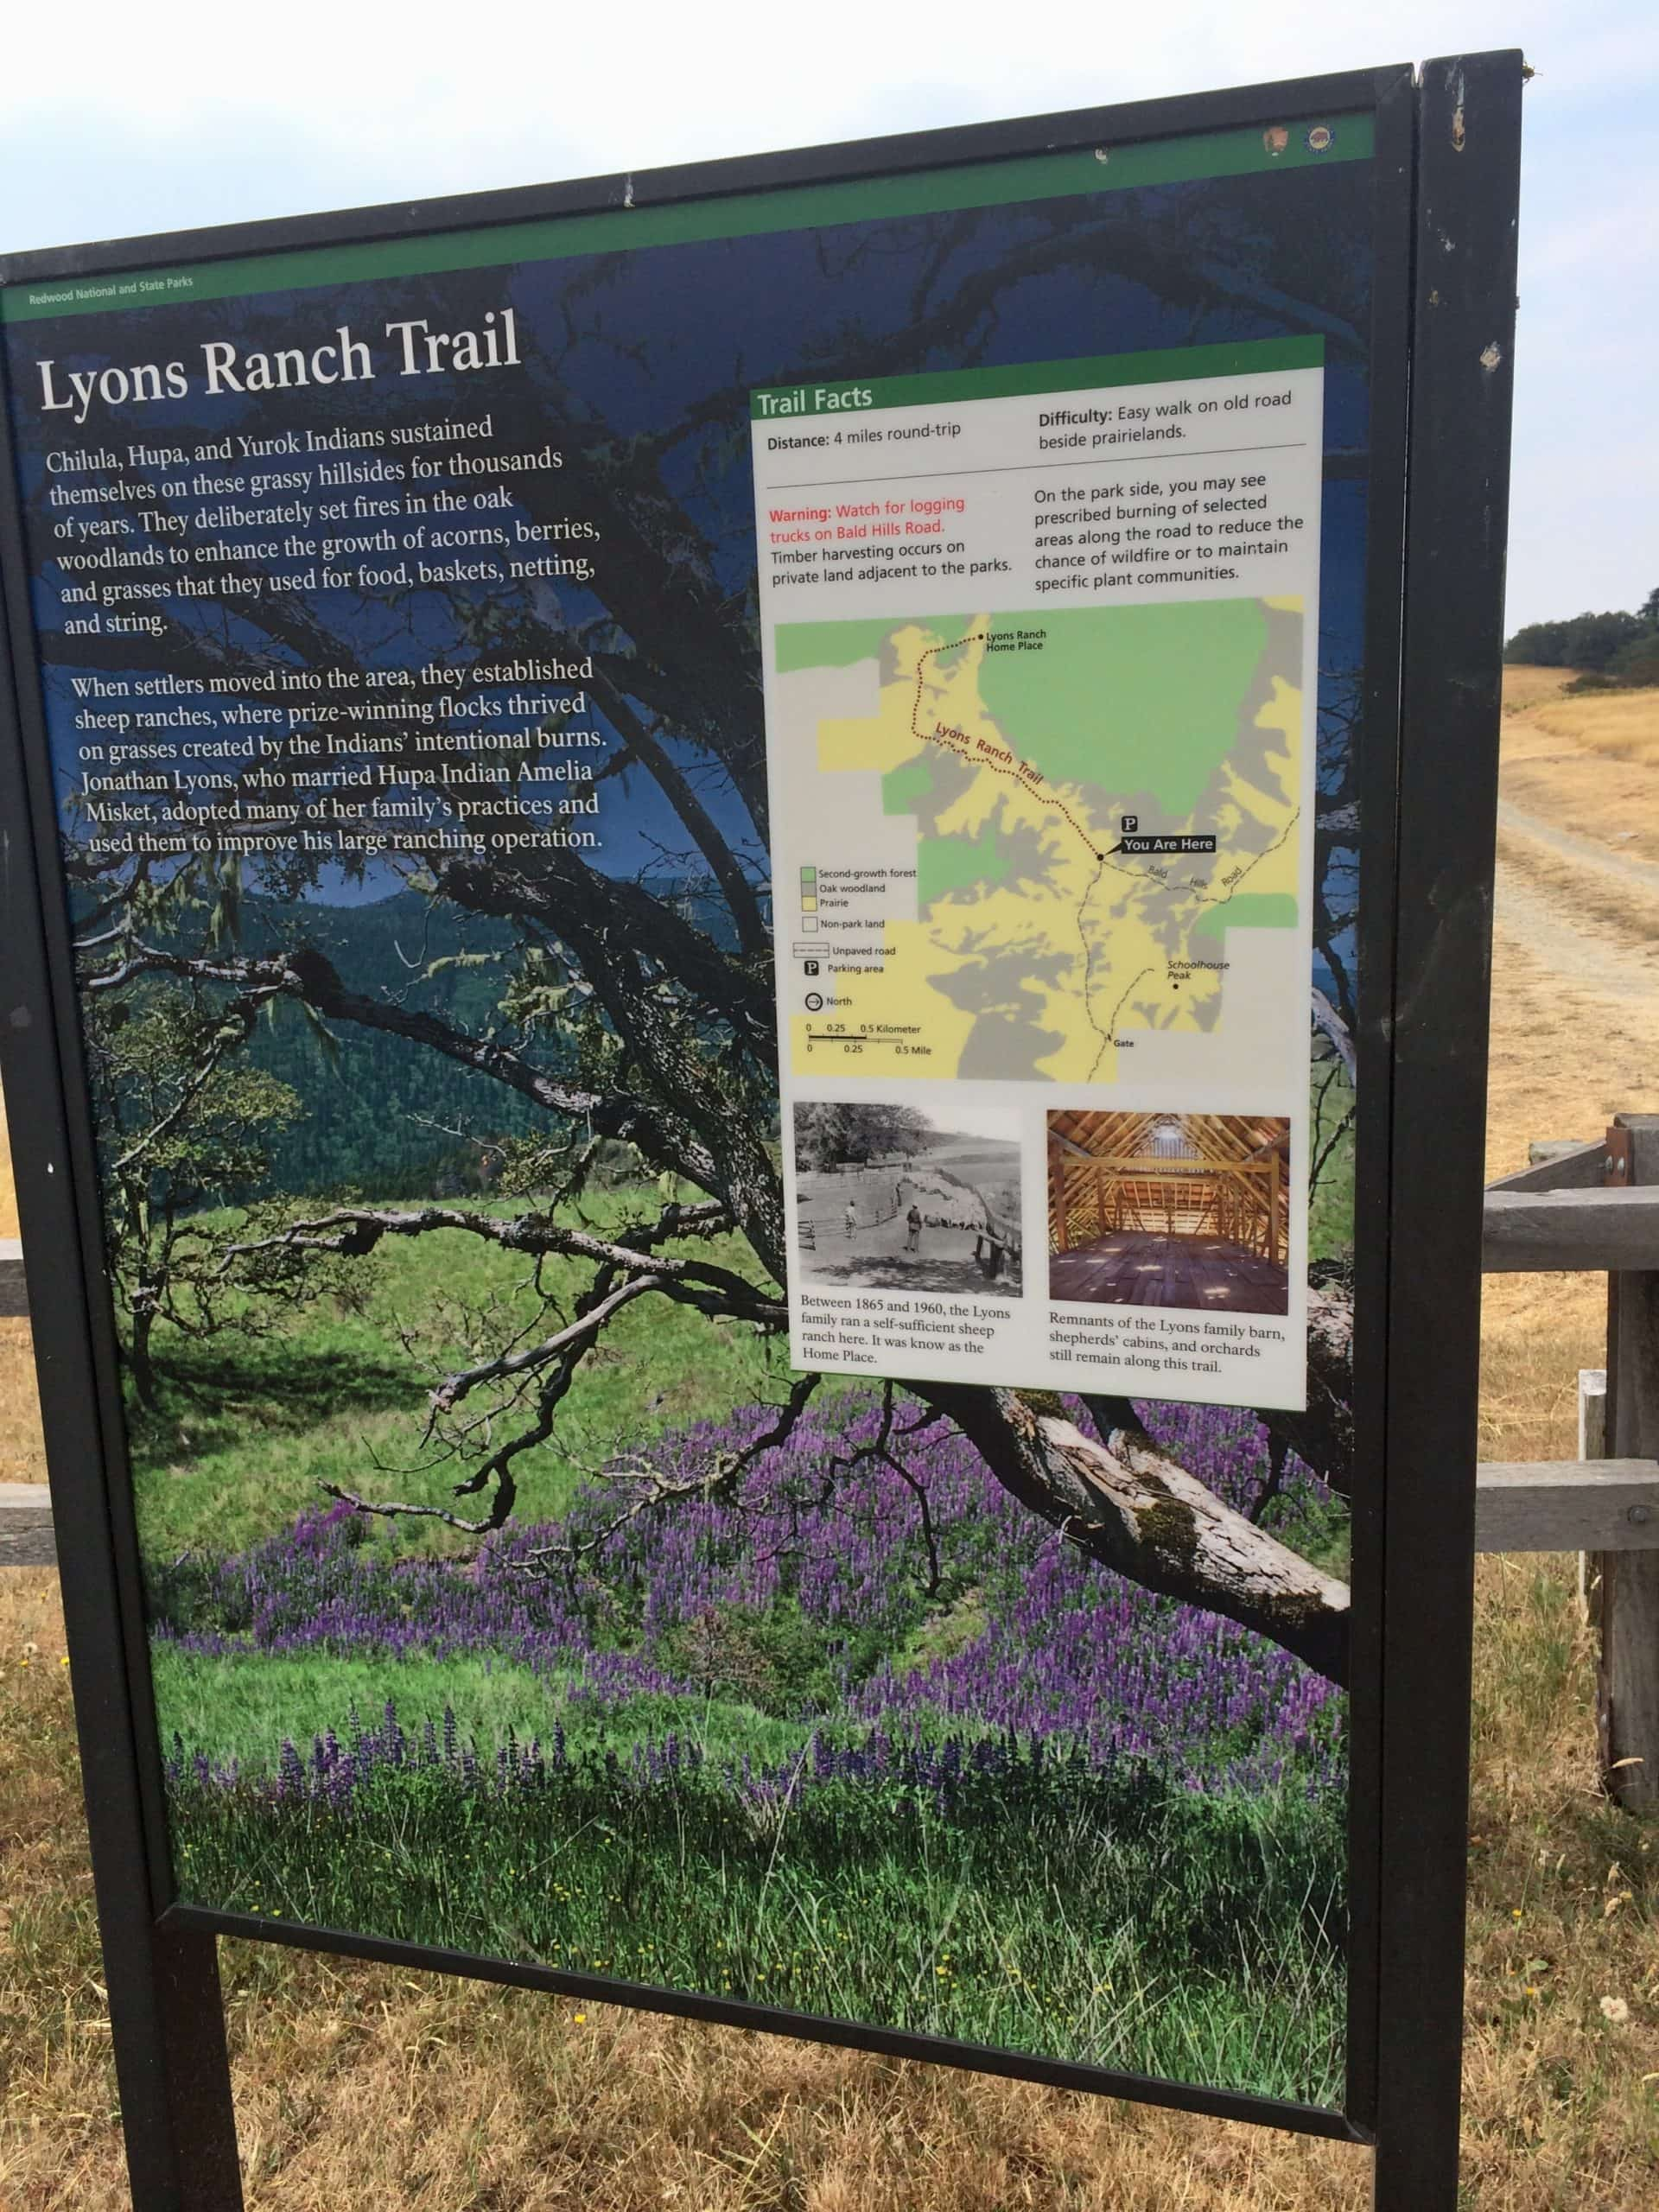 Lyons ranch trailhead sign in Redwood National park in Humboldt county California.